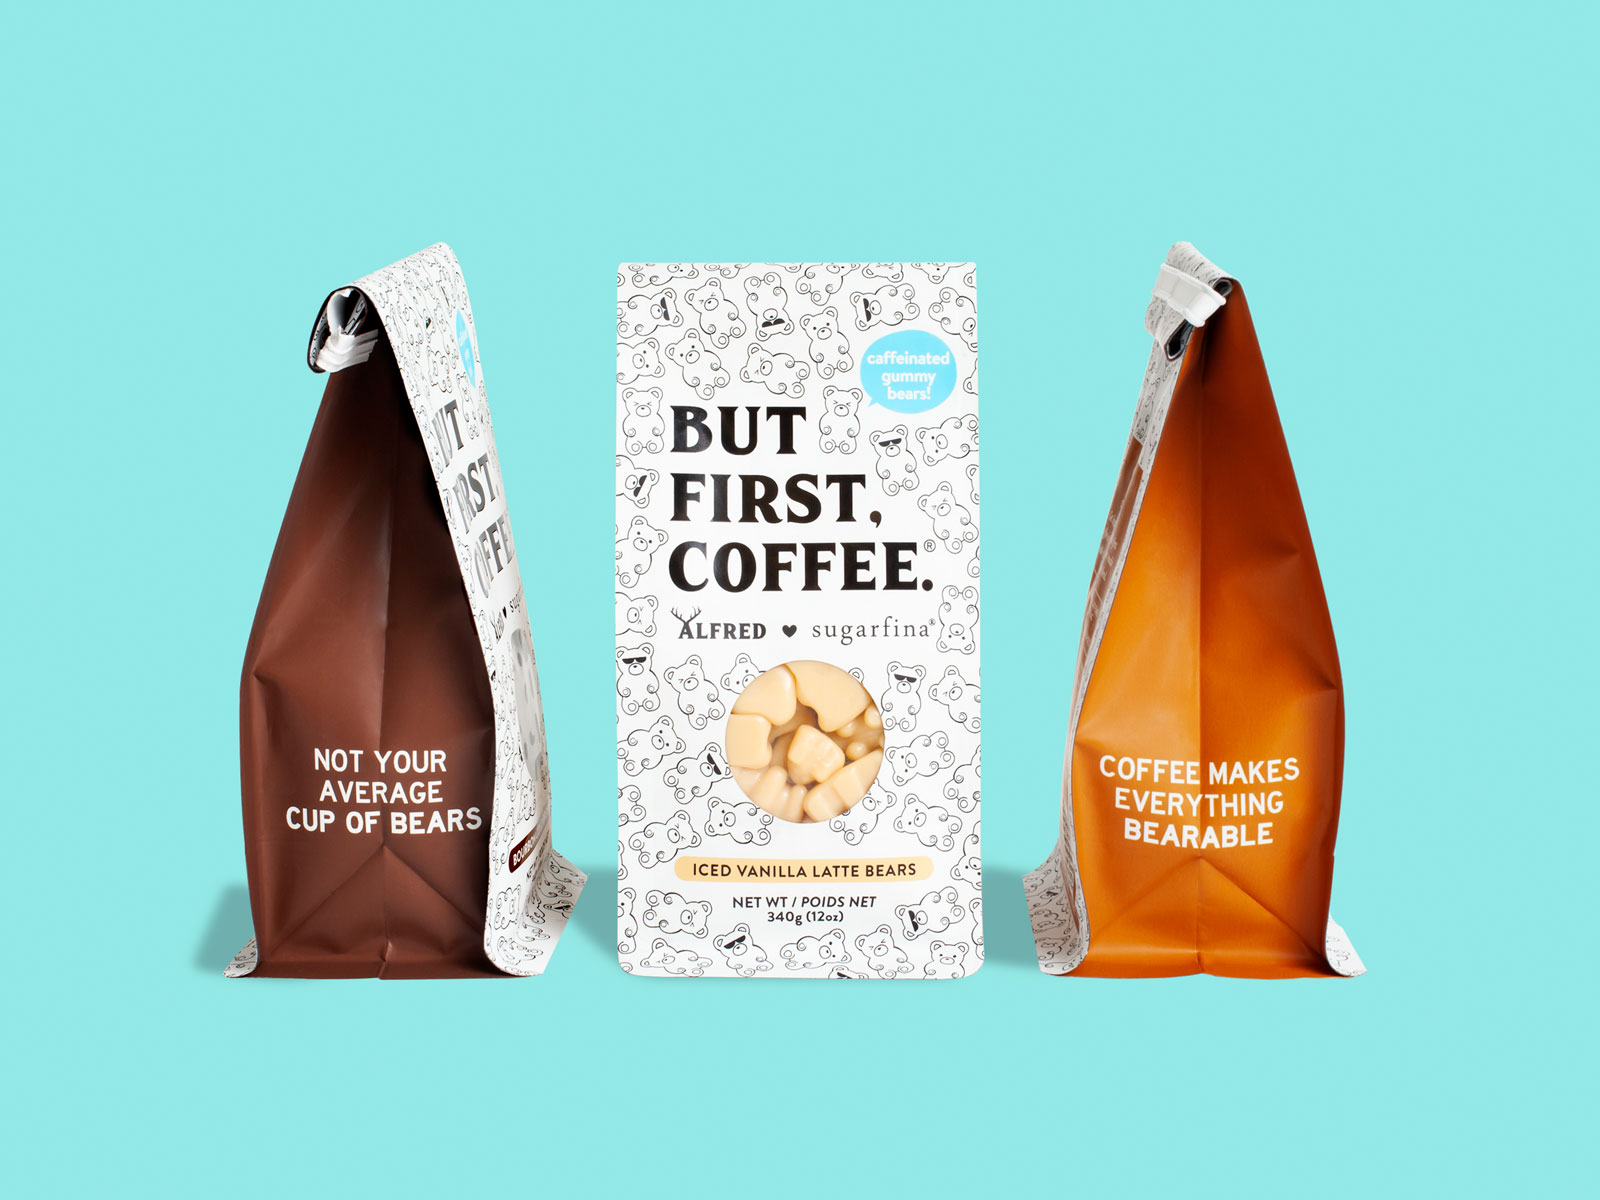 Sugarfina's New Coffee-Infused Gummy Bears Contain 60 Milligrams of Caffeine